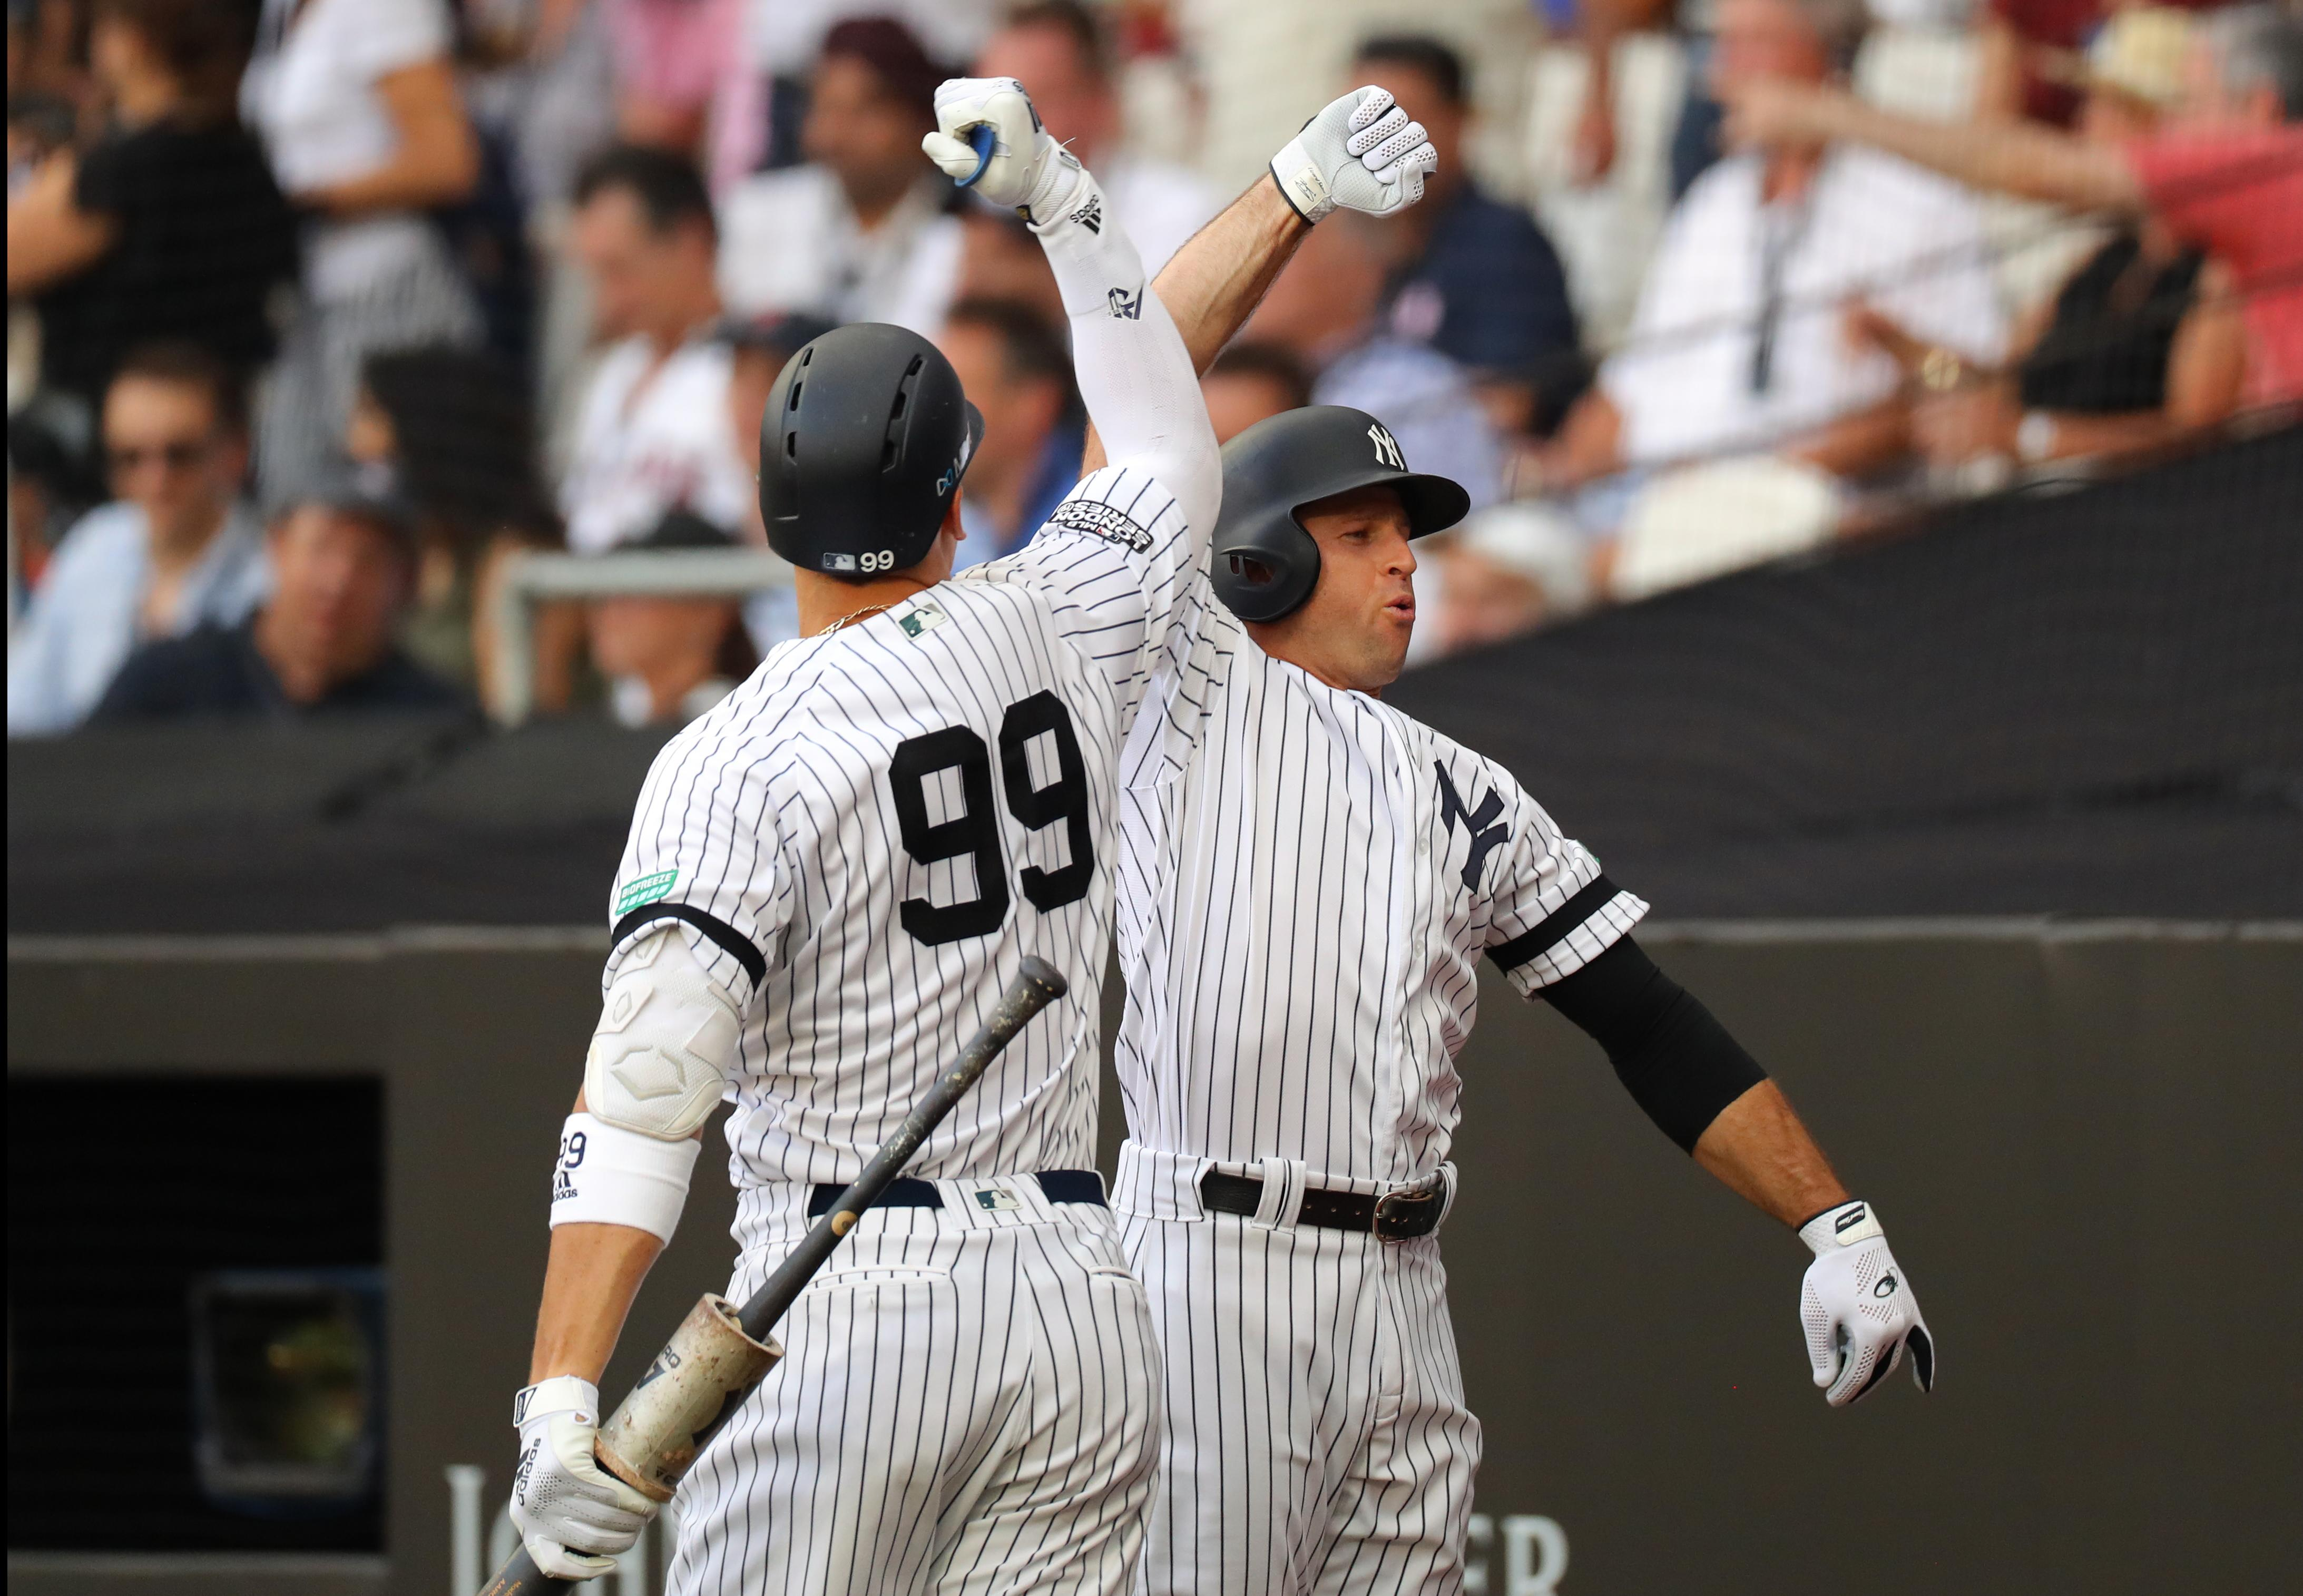 Yankees Red Sox Open London Series With Lots Of Offense